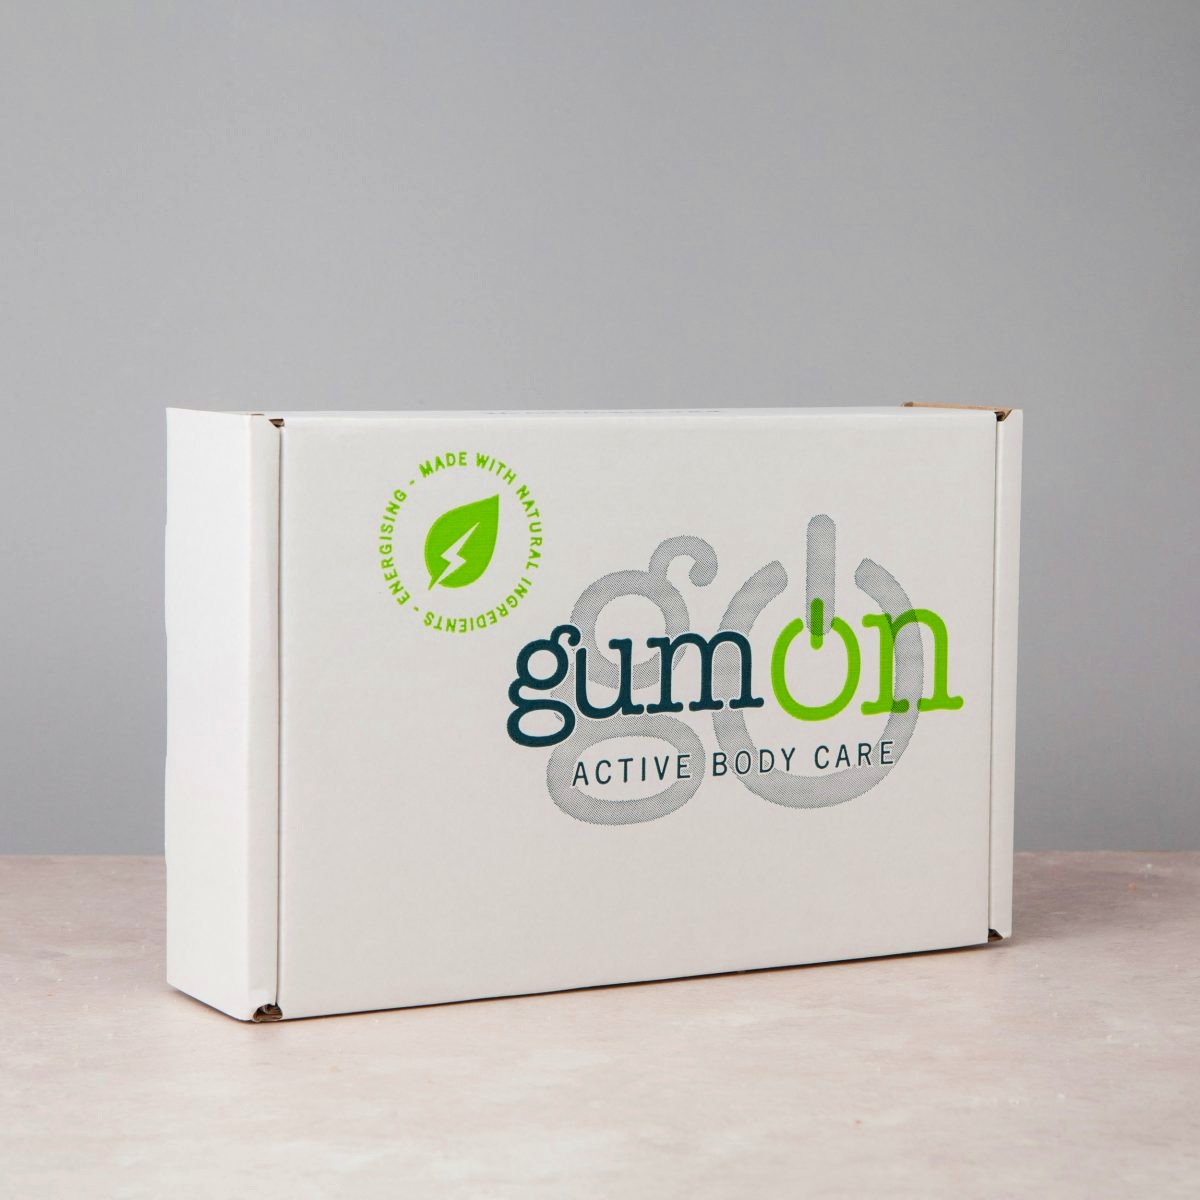 gum-on.co.uk.jpg